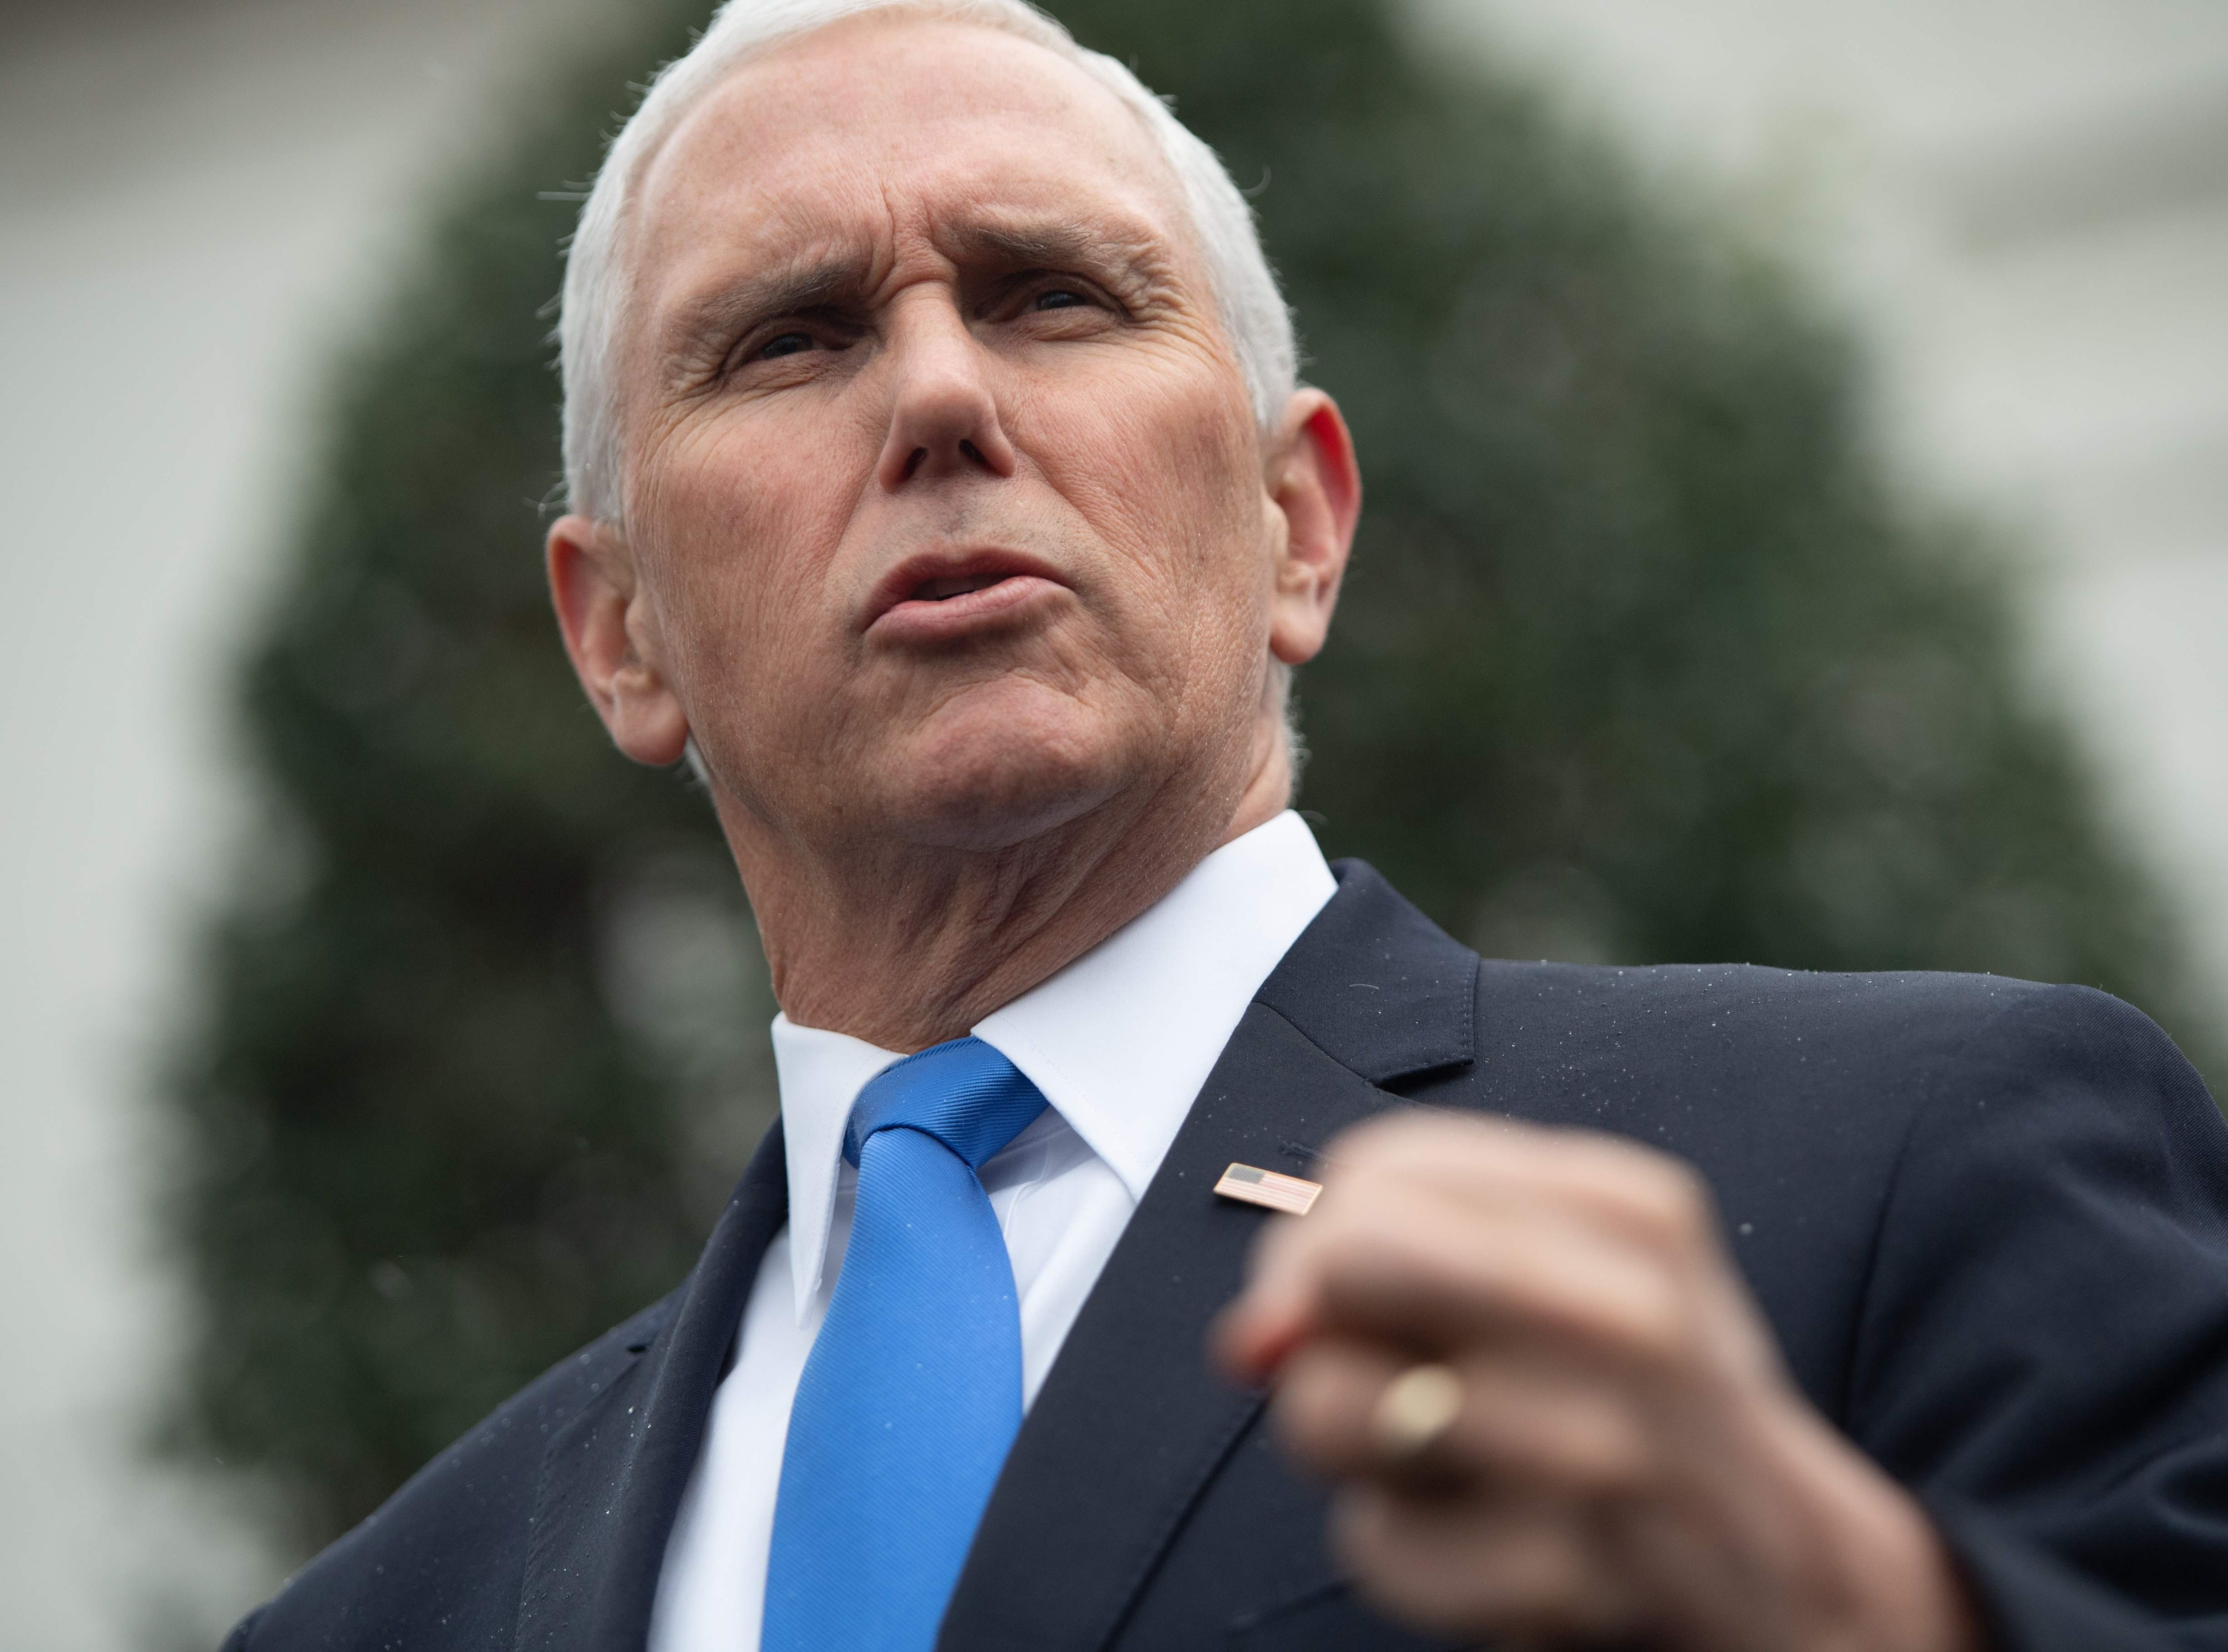 Mike Pence: Democrats refuse to compromise on border wall funding to end the shutdown